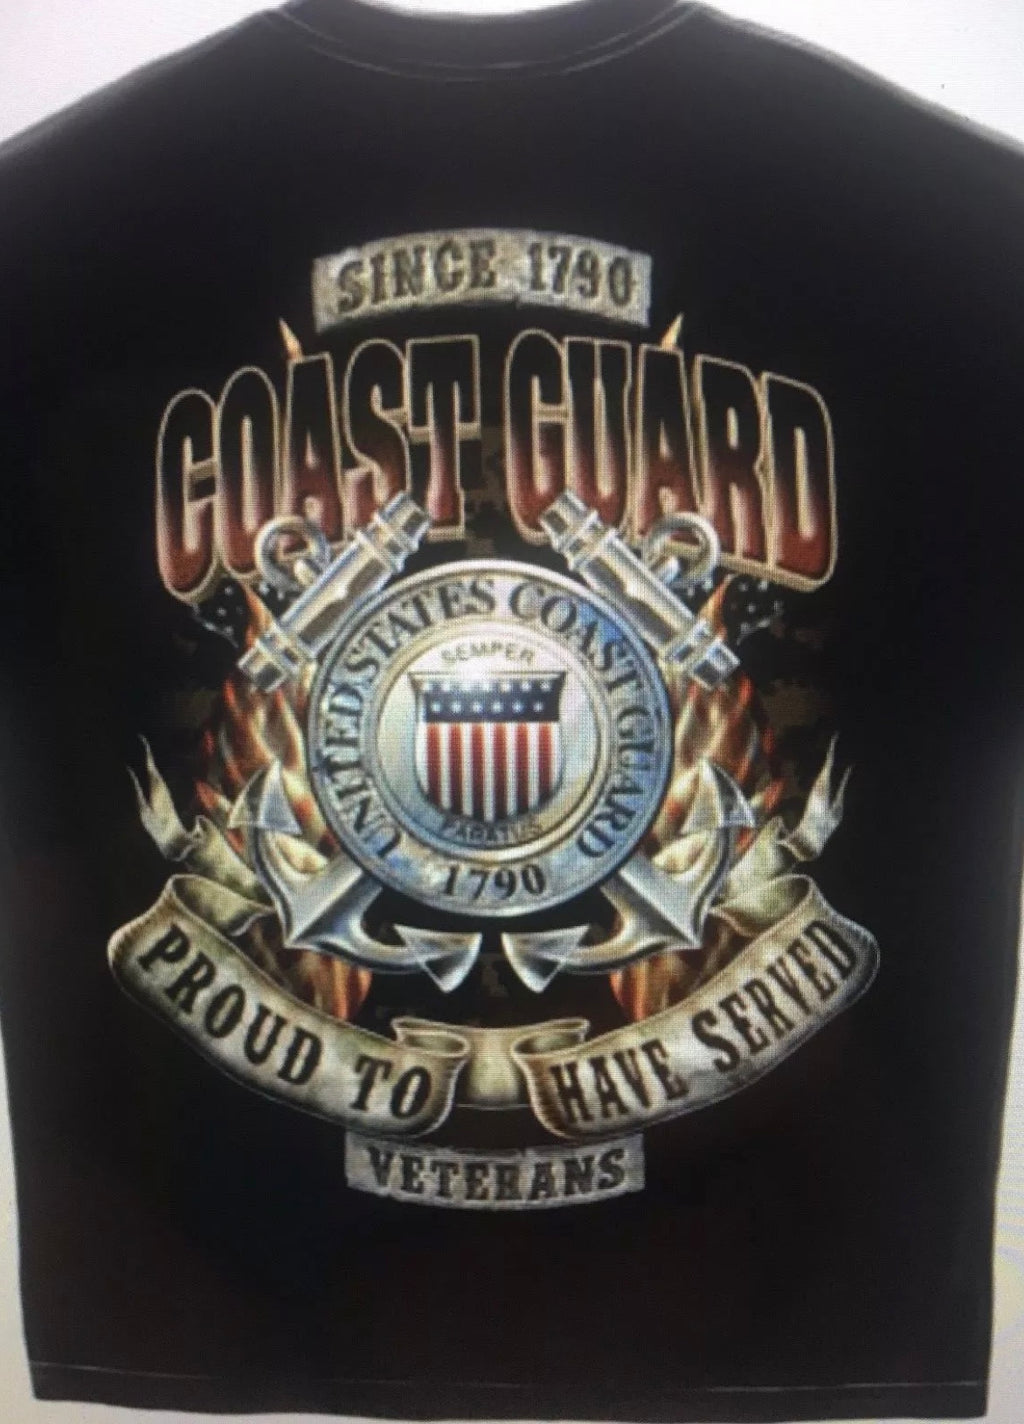 Coast Guard Proud To Have Served Veterans T-Shirt - The Wall Kids, Inc.